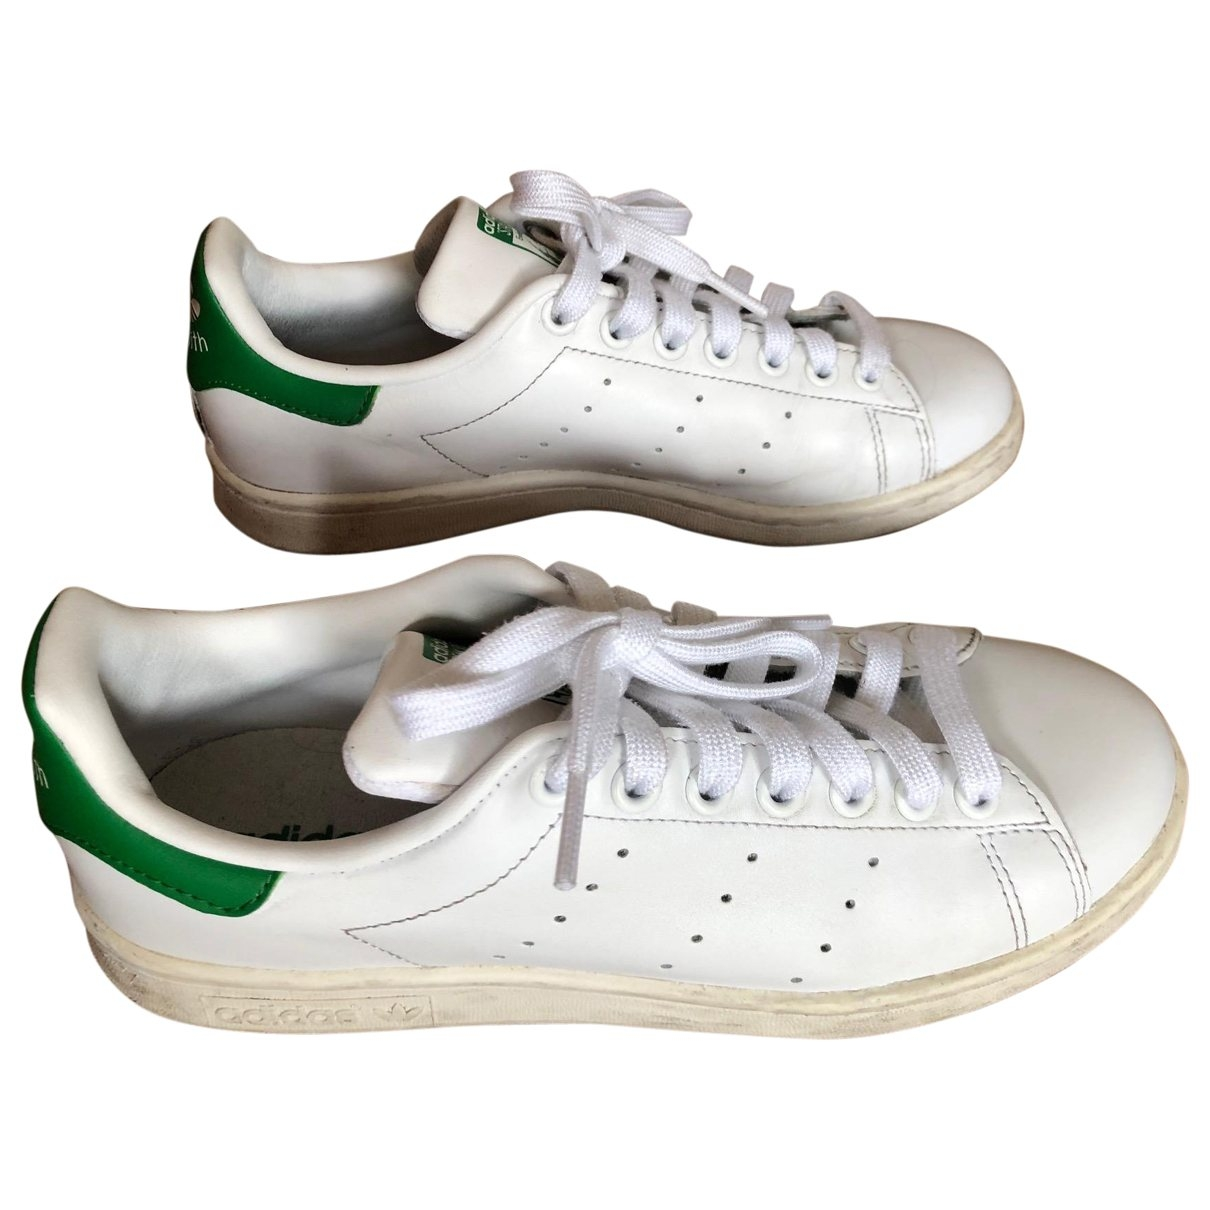 Adidas Stan Smith White Patent leather Trainers for Women 5.5 UK